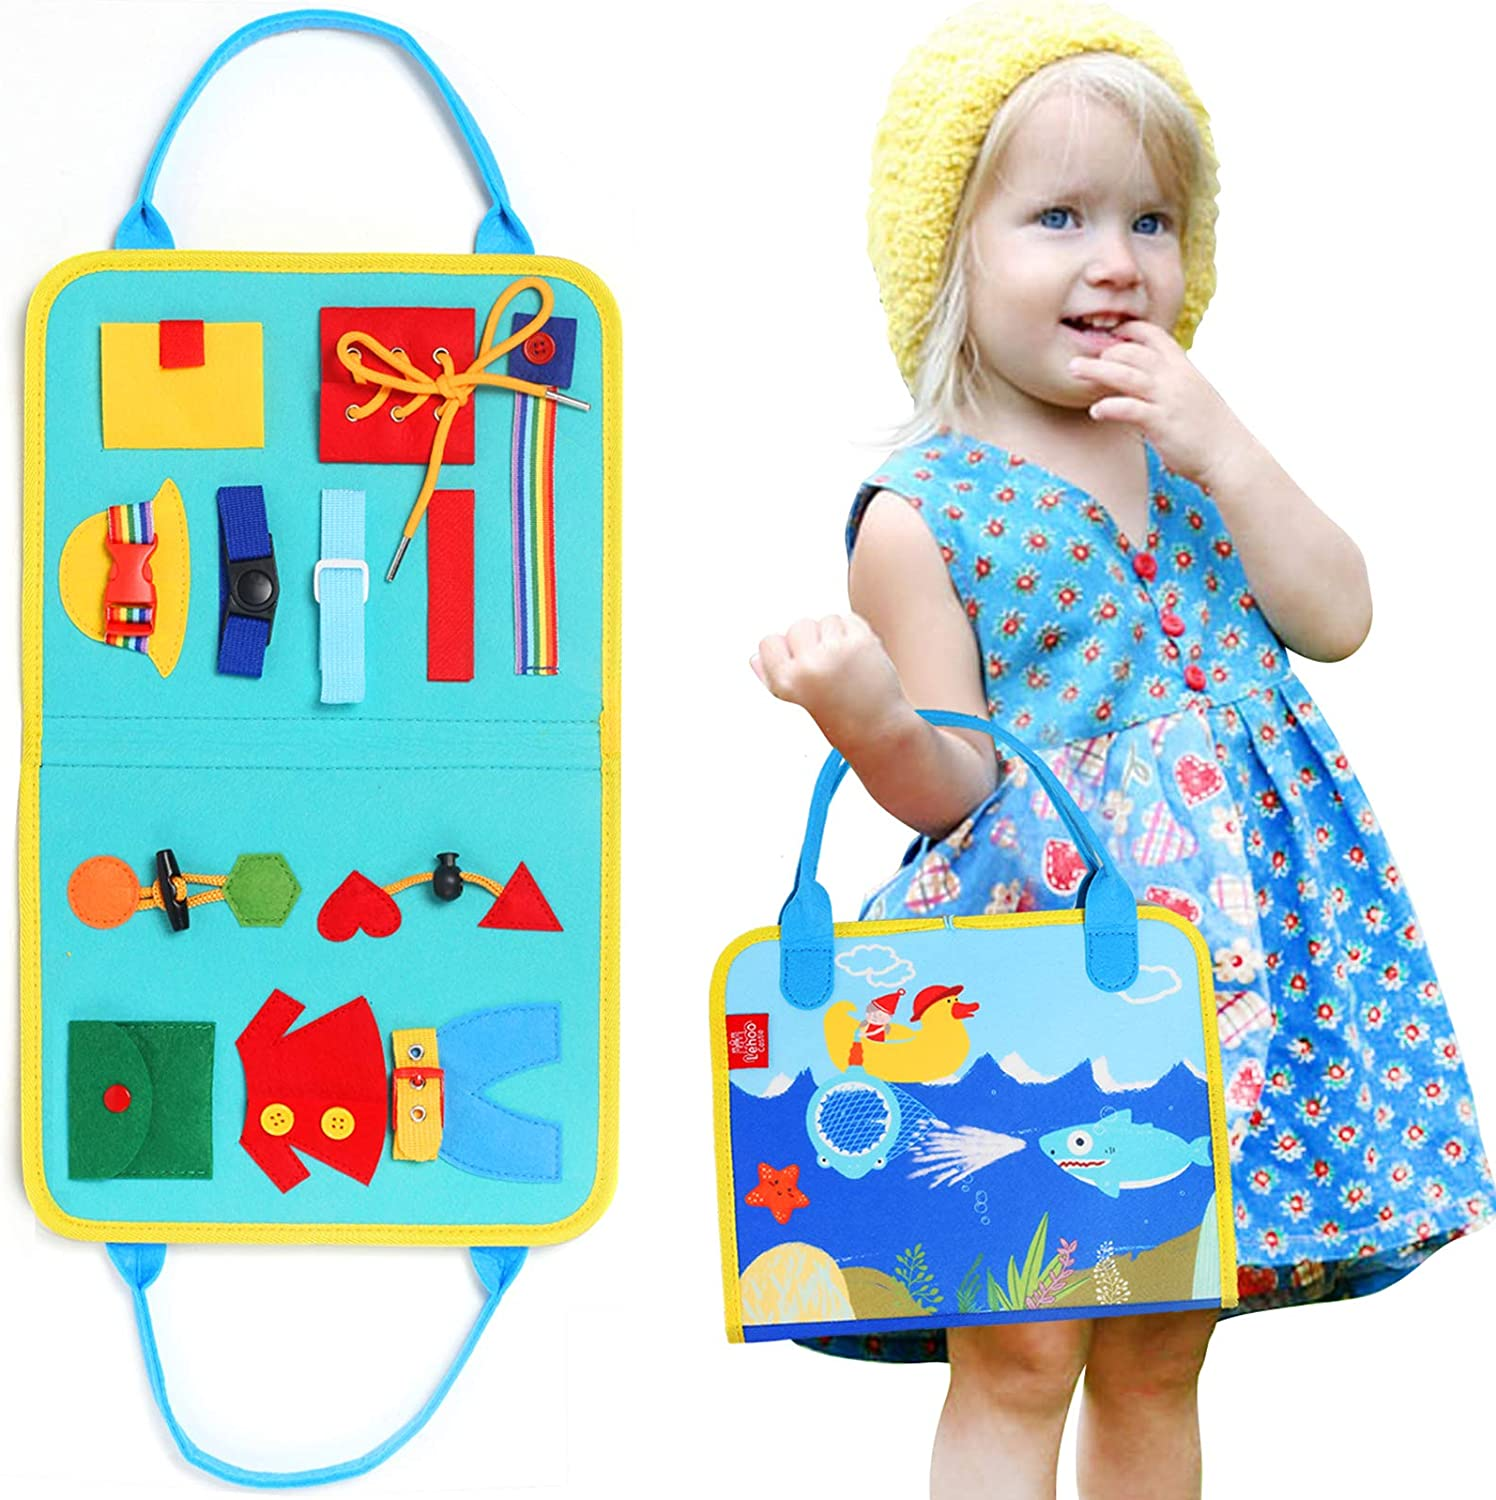 Lehoo Castle Busy Board Montessori Toys for Toddlers Sensory Toys Basic Skills Board Educational Learning Toys for 1 2 3 4 Year Old Kids Preschool Learn to Dress